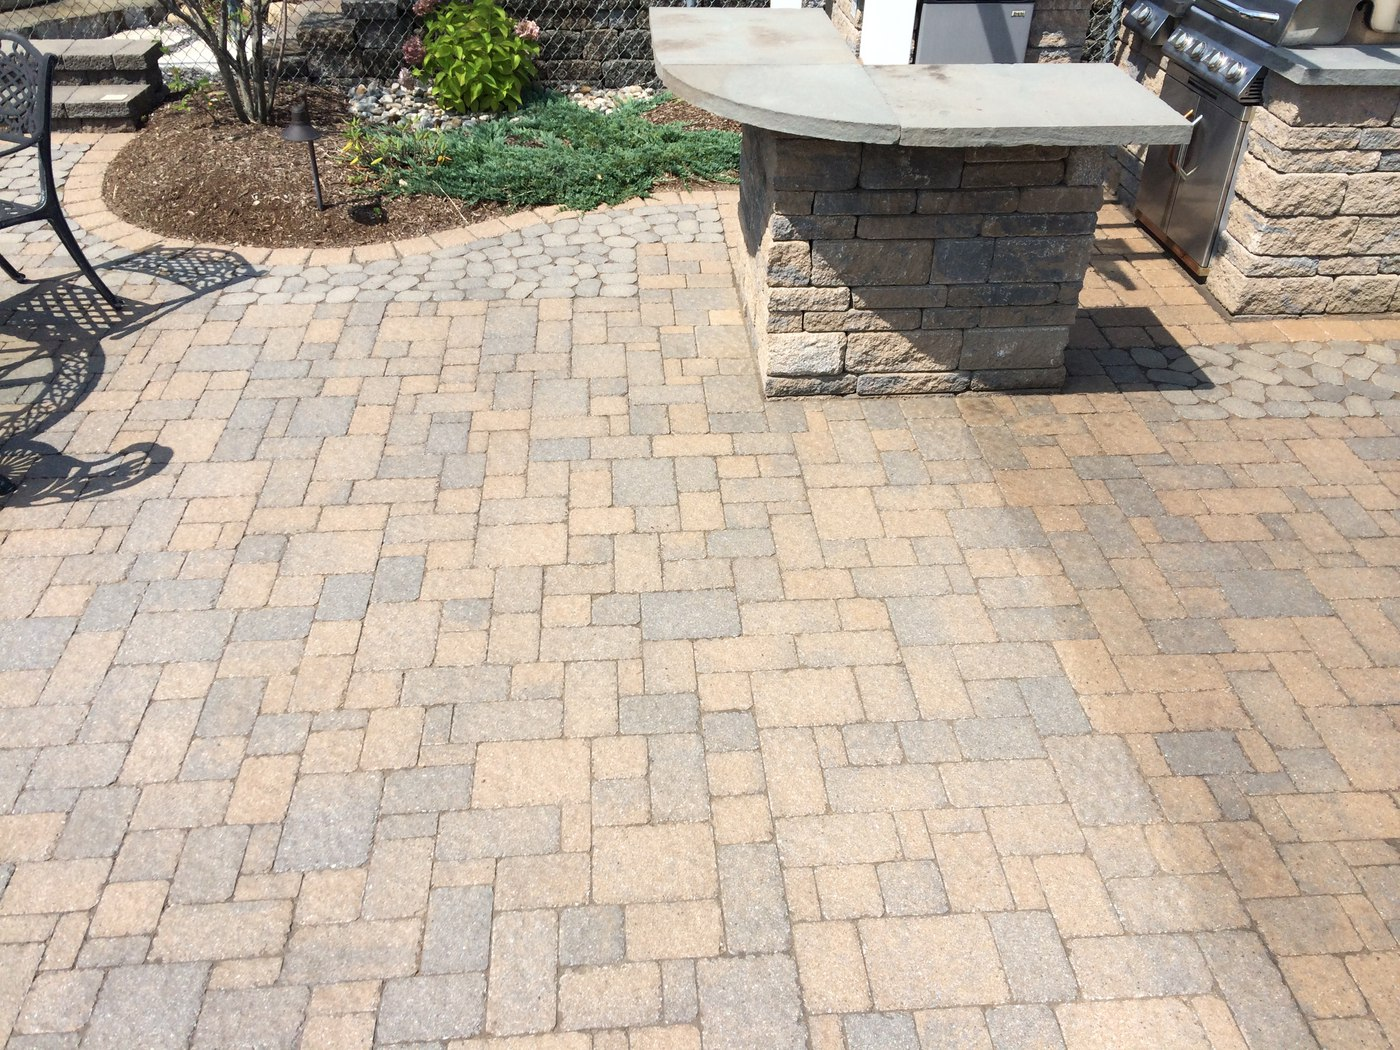 Paver Sealing Wet Vs Dry Look